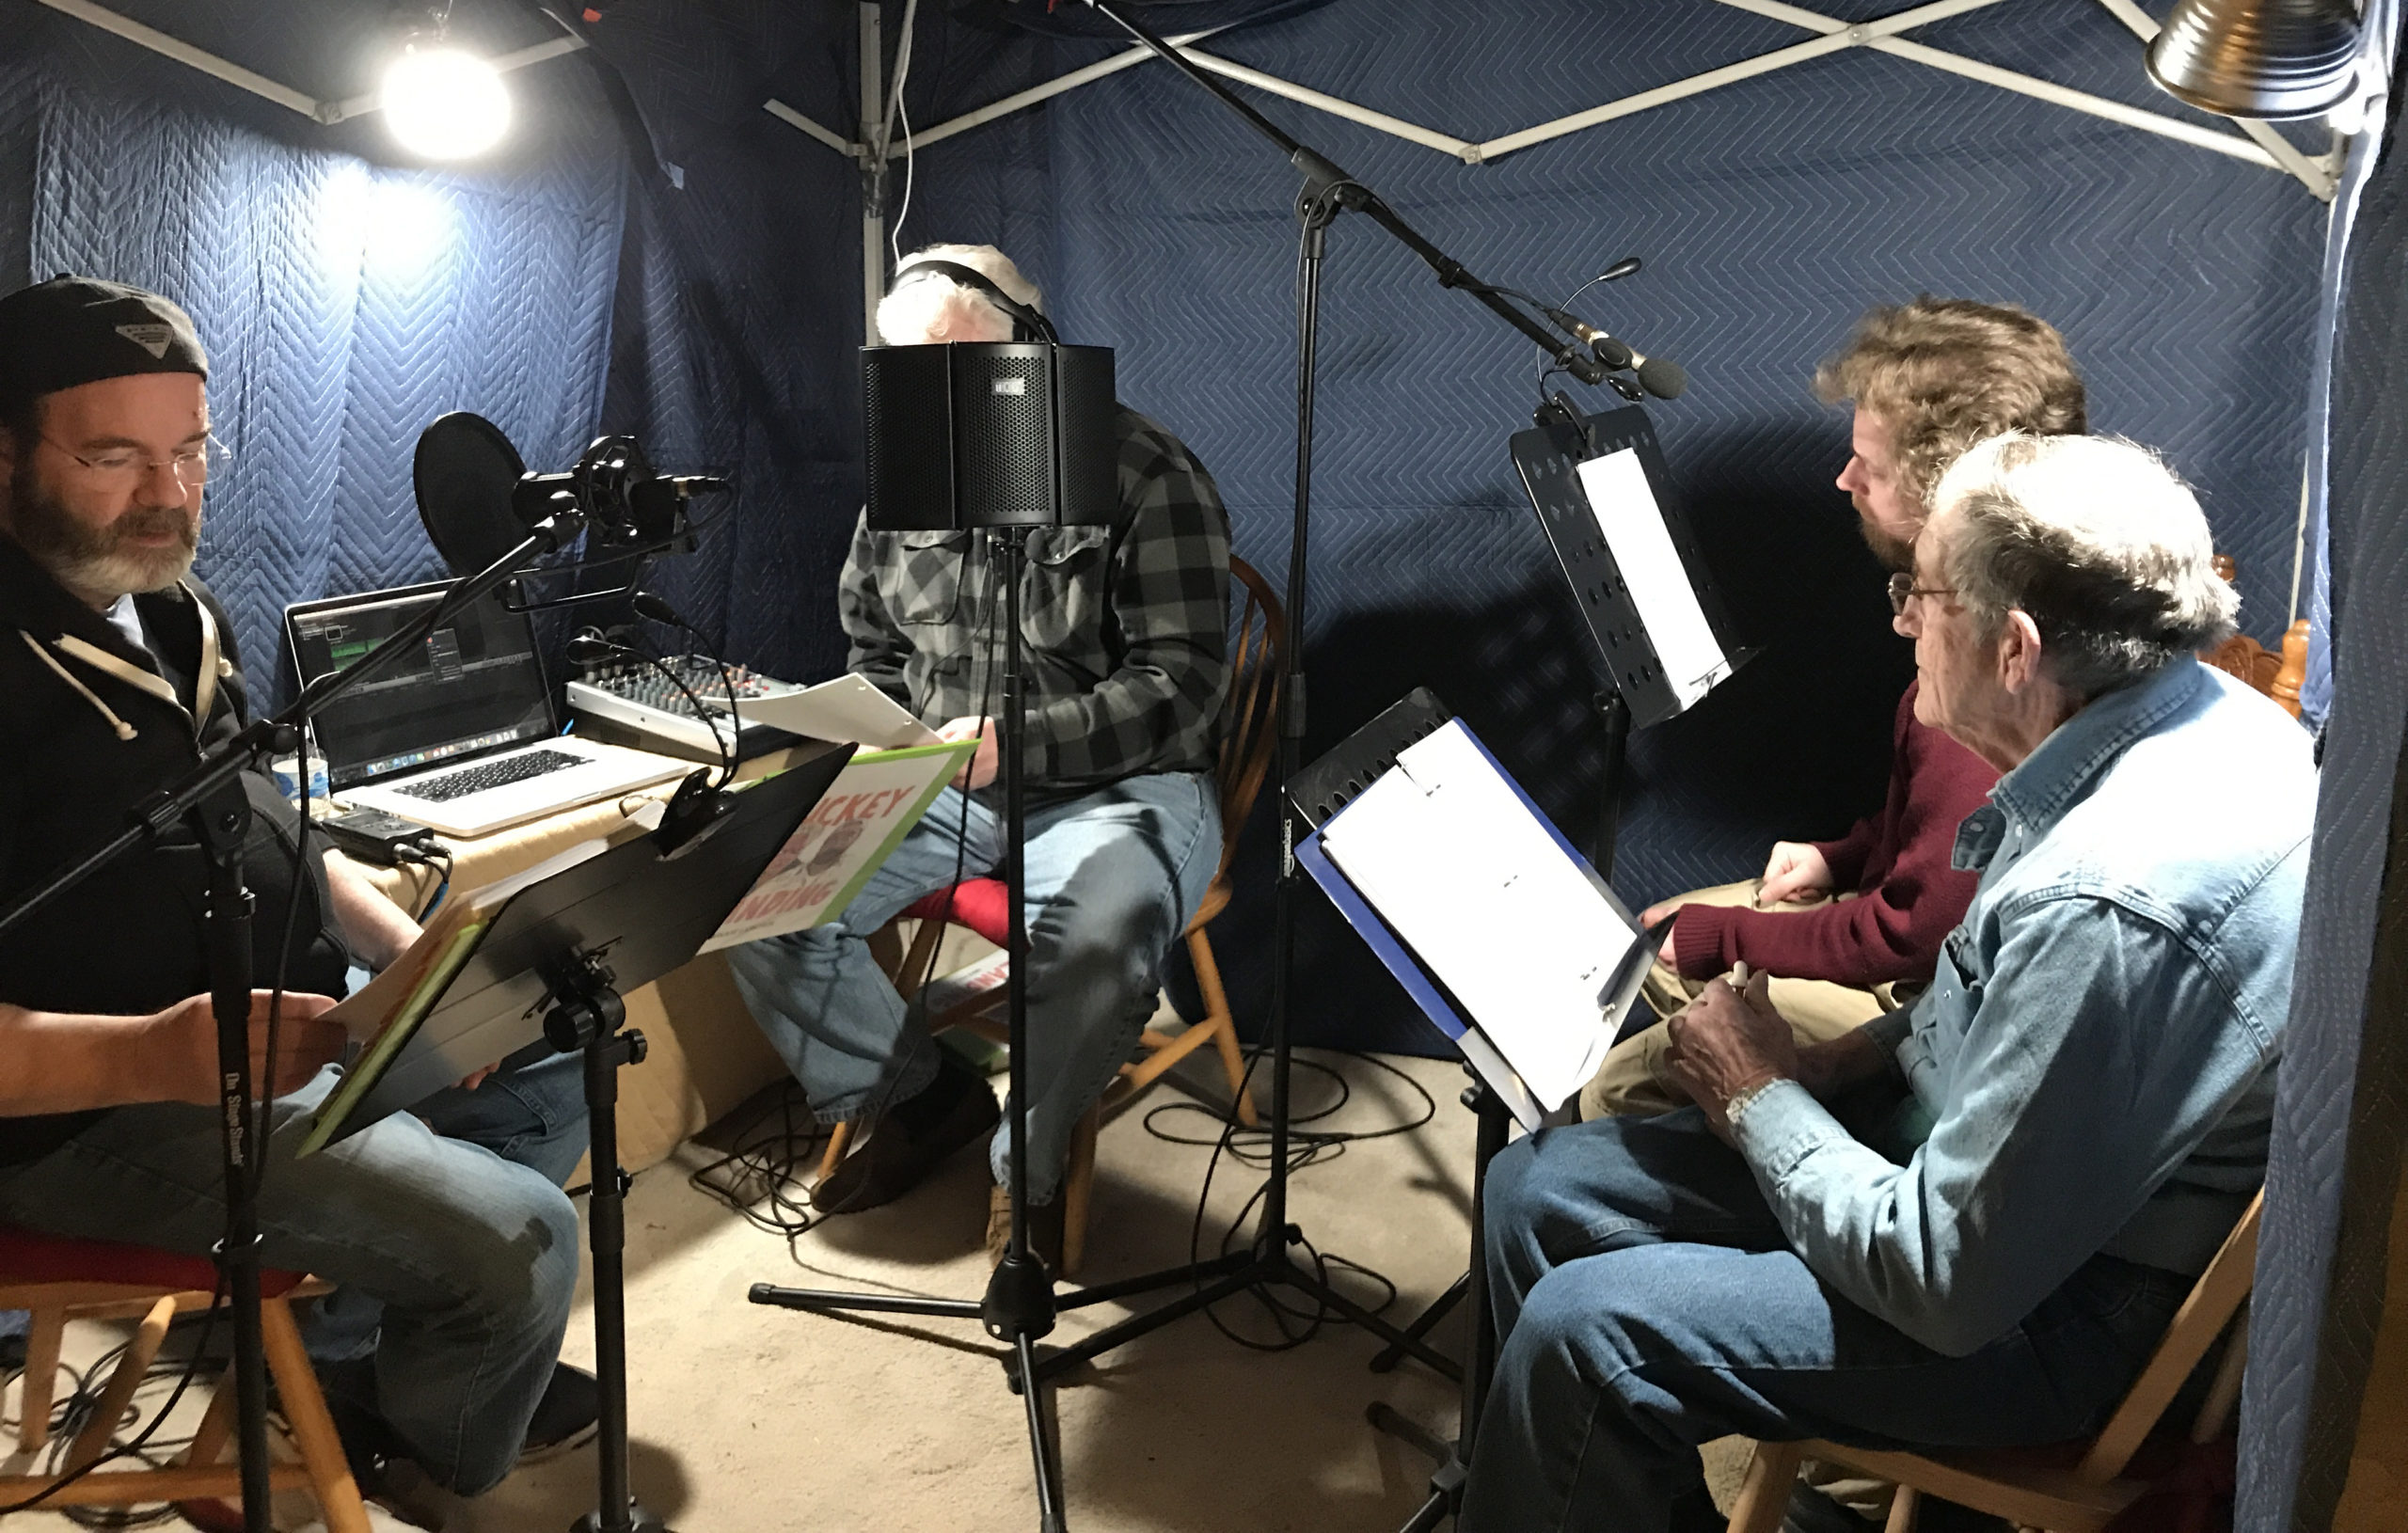 Group recording session of Muckey Landing